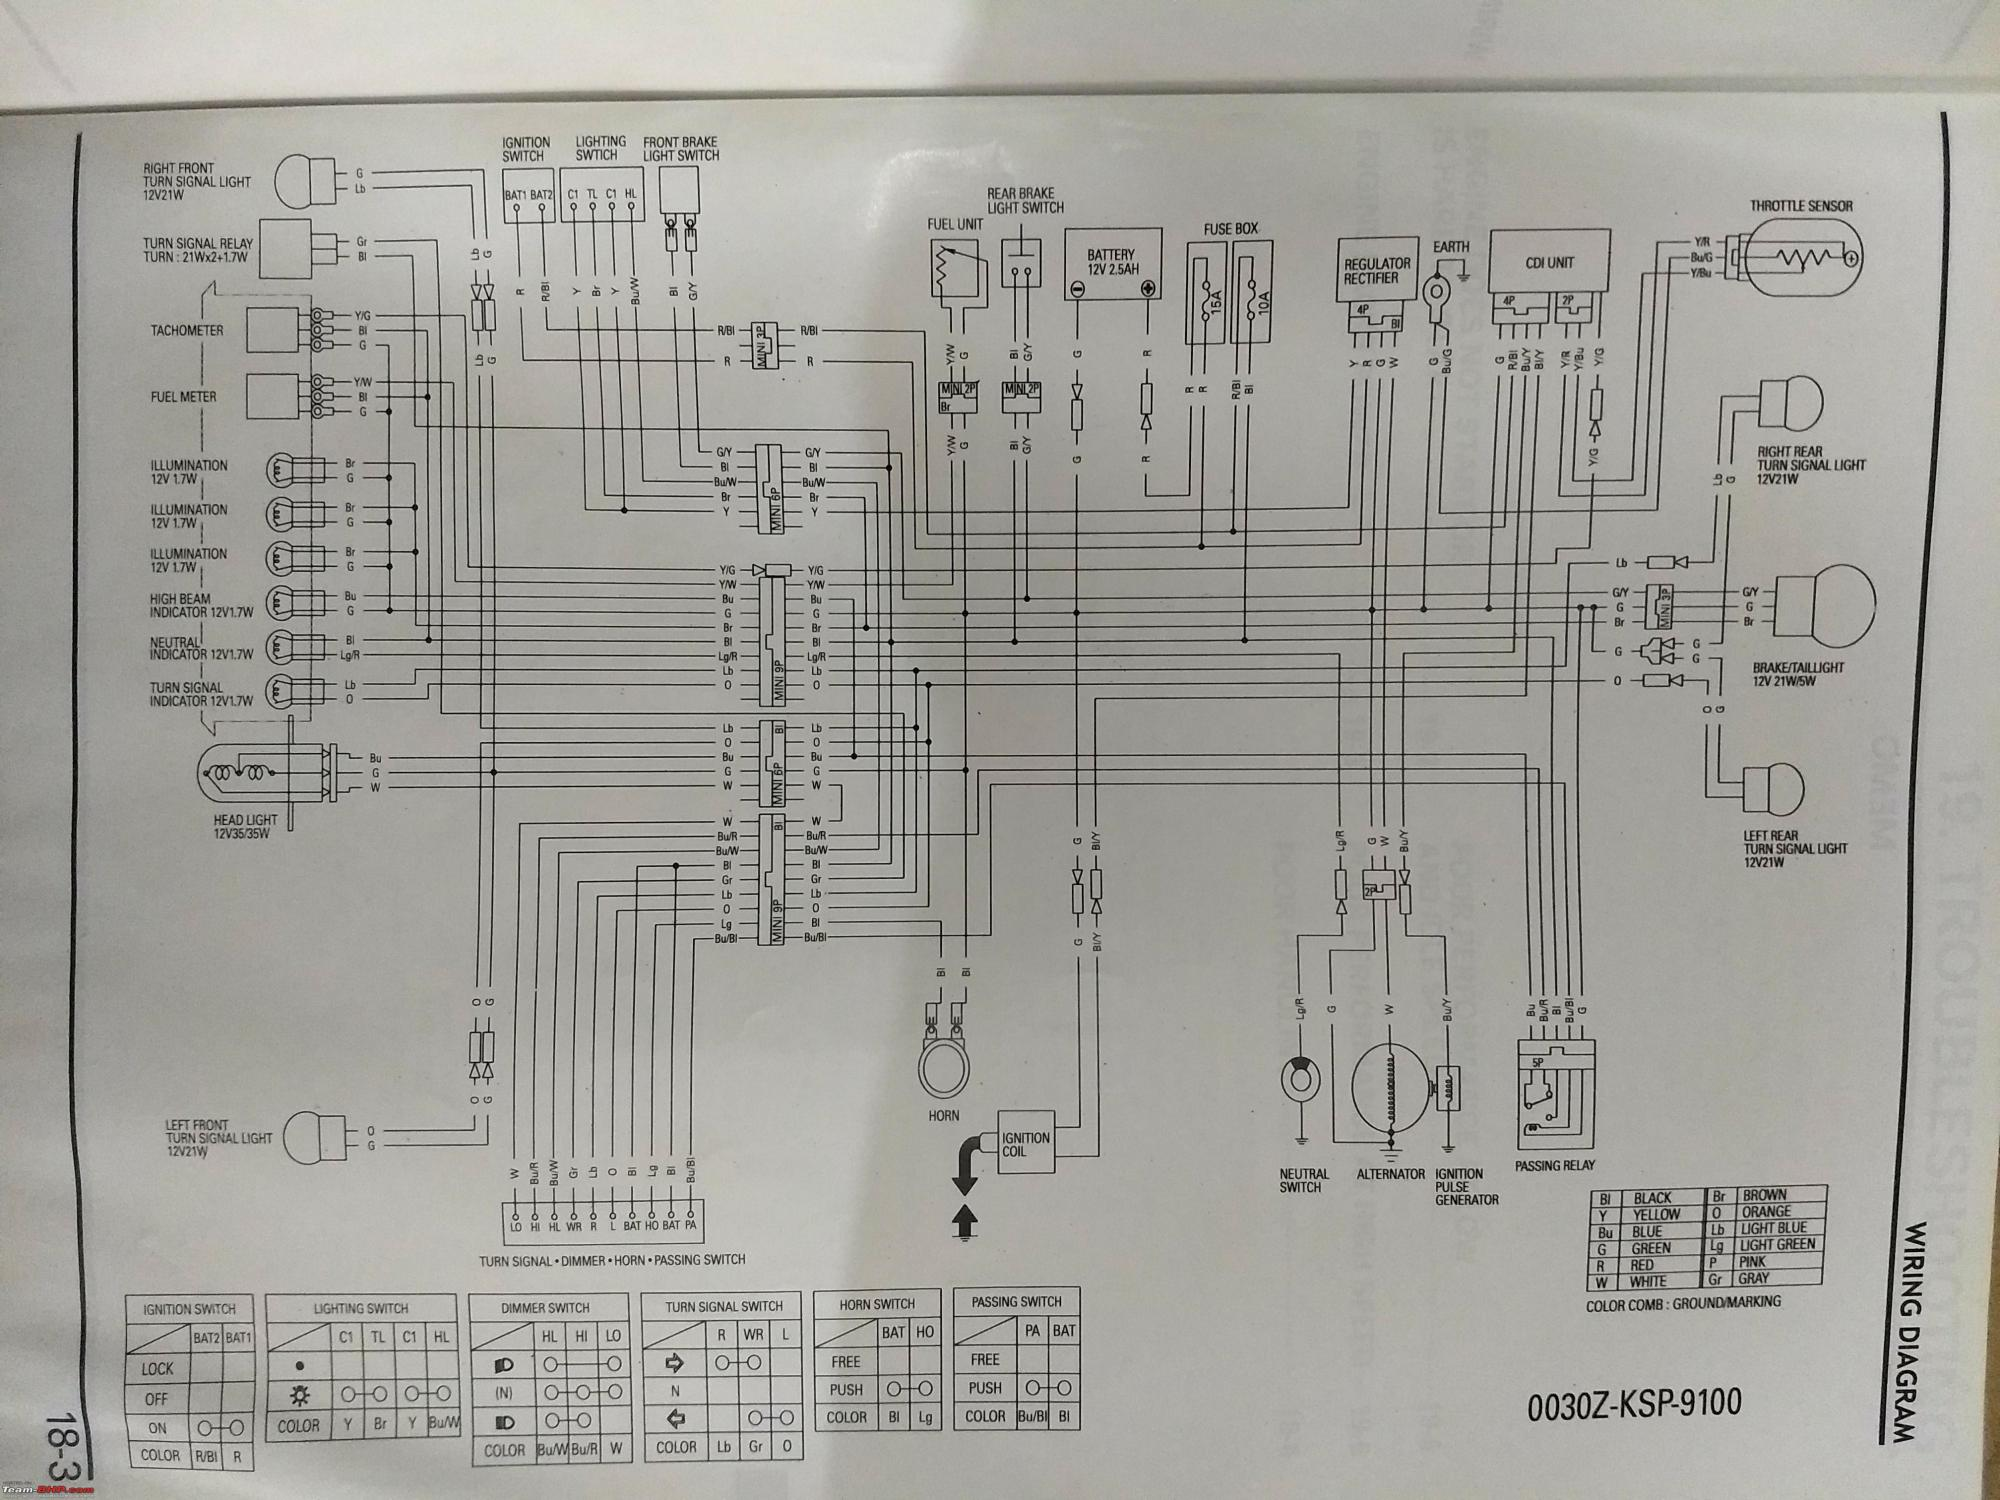 hight resolution of hero honda wiring diagram my wiring diagramhero honda wiring diagram wiring diagram sample hero honda wiring